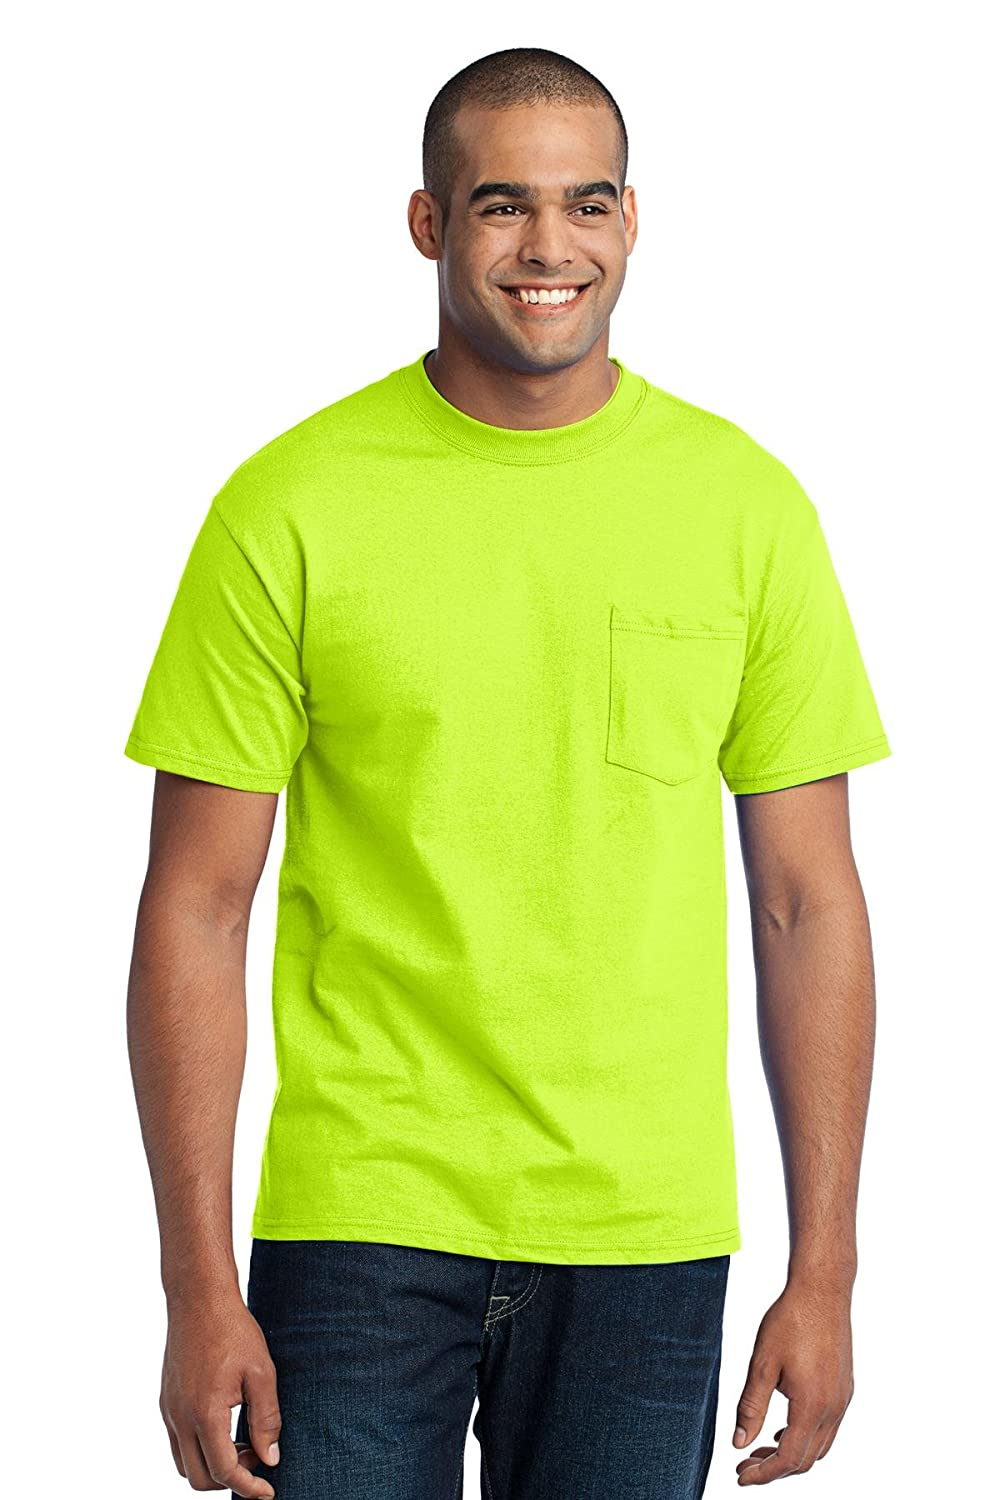 Port & Company 50/50 Cotton/Poly T-Shirt with Pocket. PC55P Safety Green